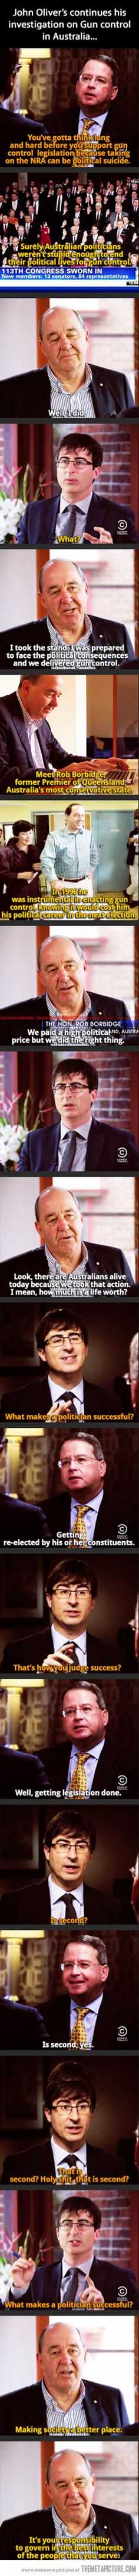 "American vs. Australian politicians… As John Oliver then concluded, ""Australia has provided an excellent example for America to ignore."""